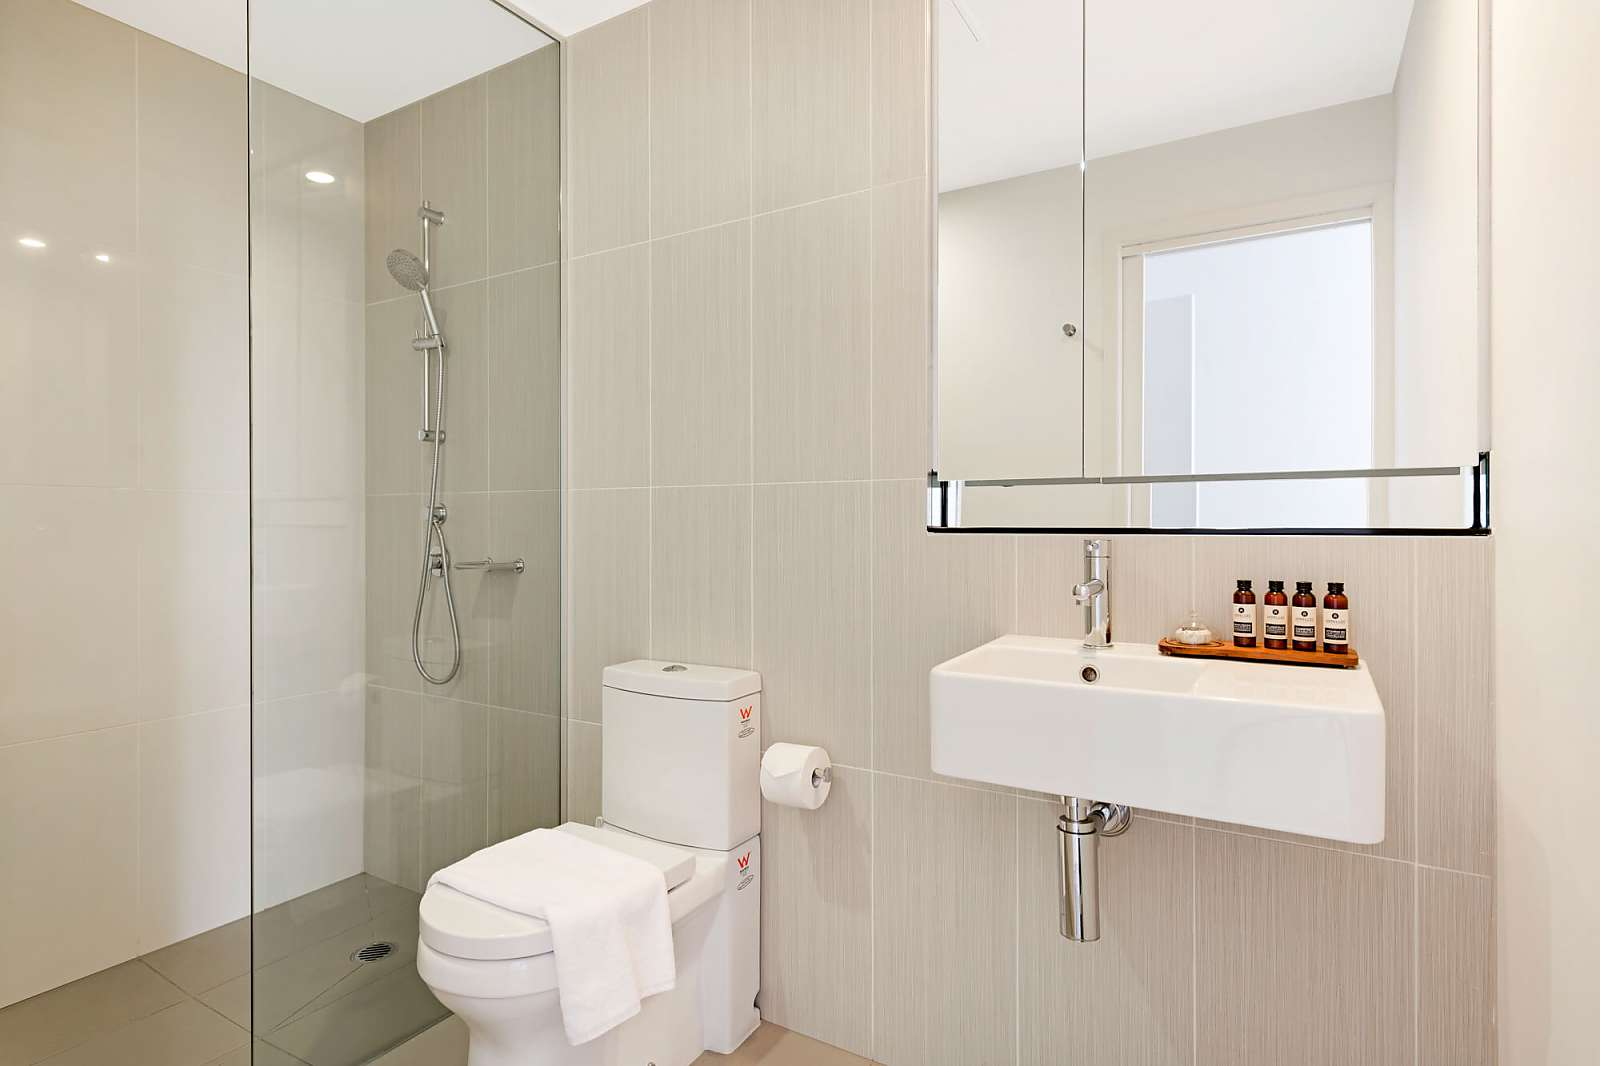 Apartment 2707 at Vogue Serviced Apartments South Yarra